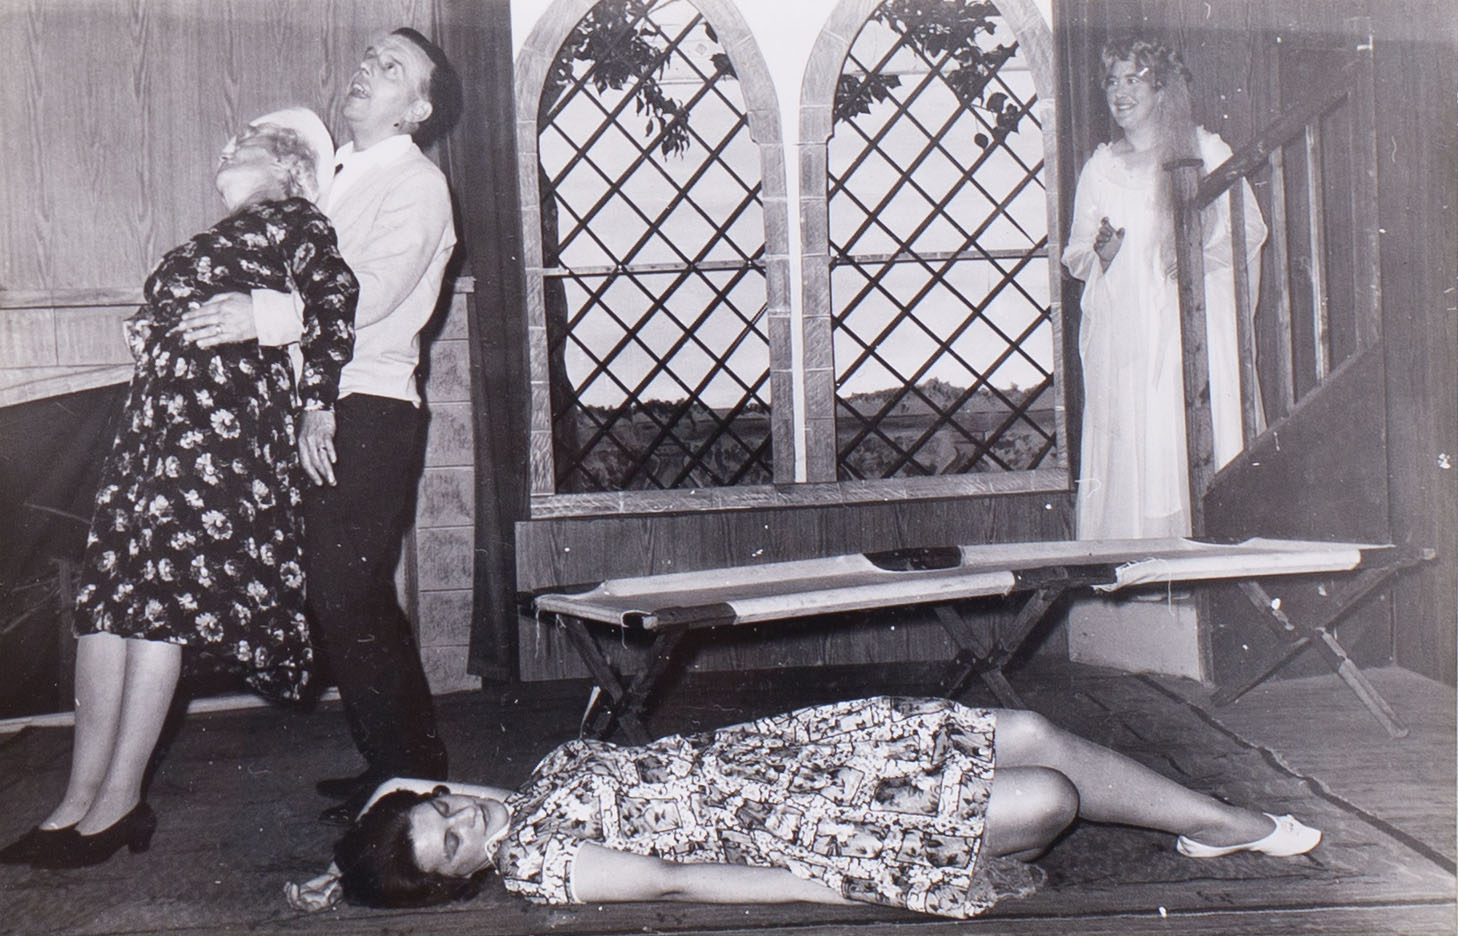 Photograph of the cast in a scene from the play 'The Jilted Ghost' presented by Bishopsteignton Players